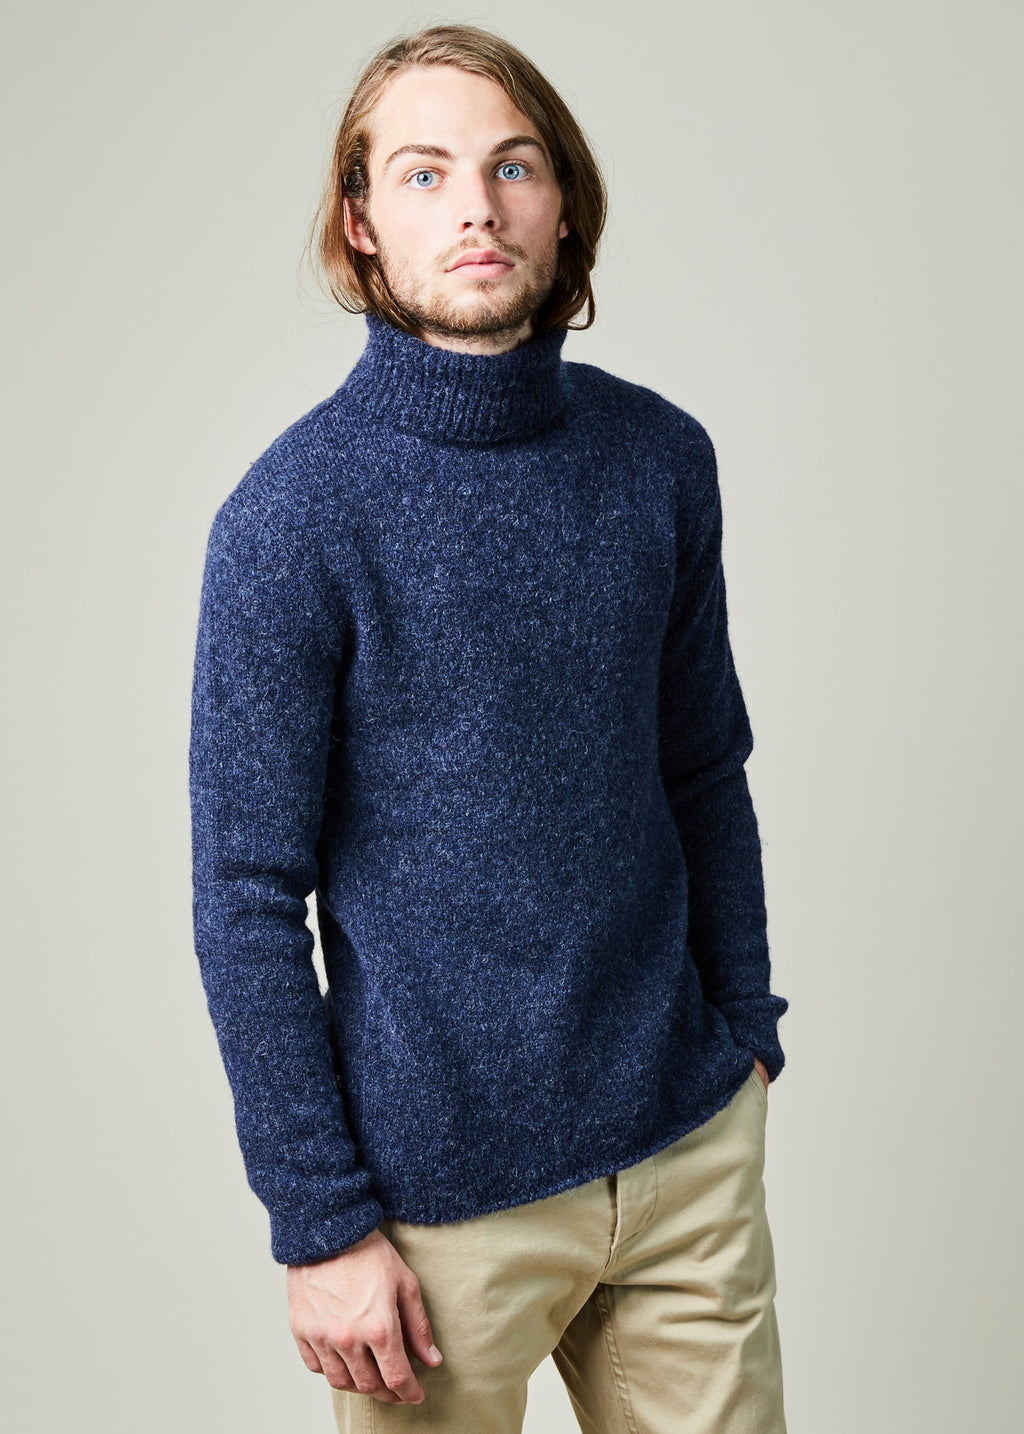 Alpaca Knit Turtleneck Sweater